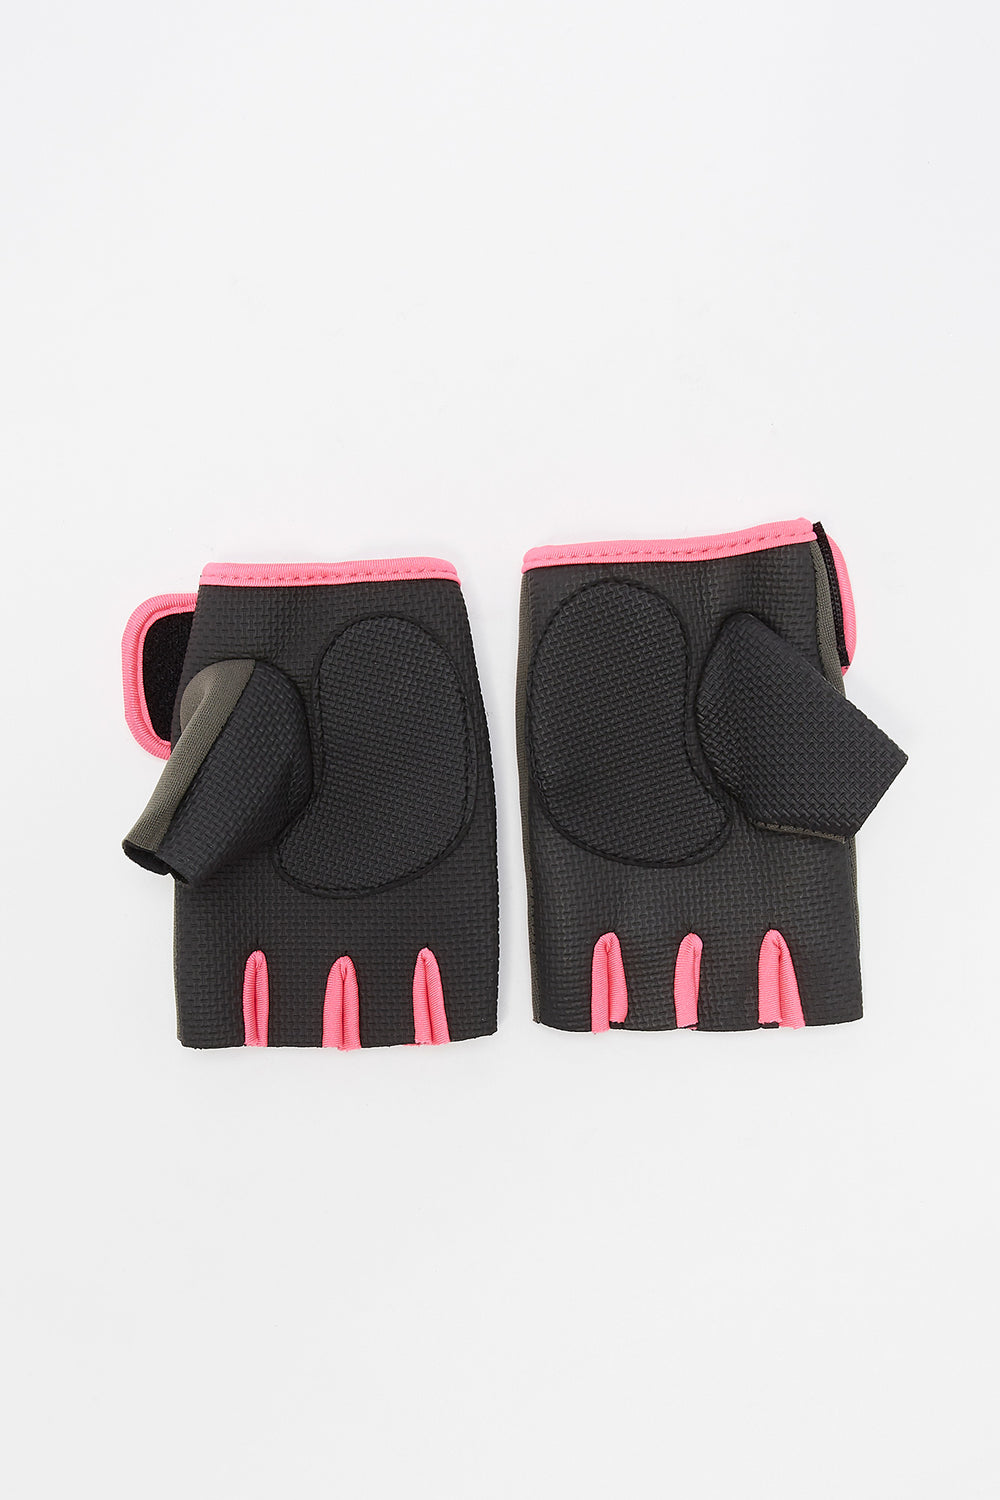 Universal Fitness Gloves Pink